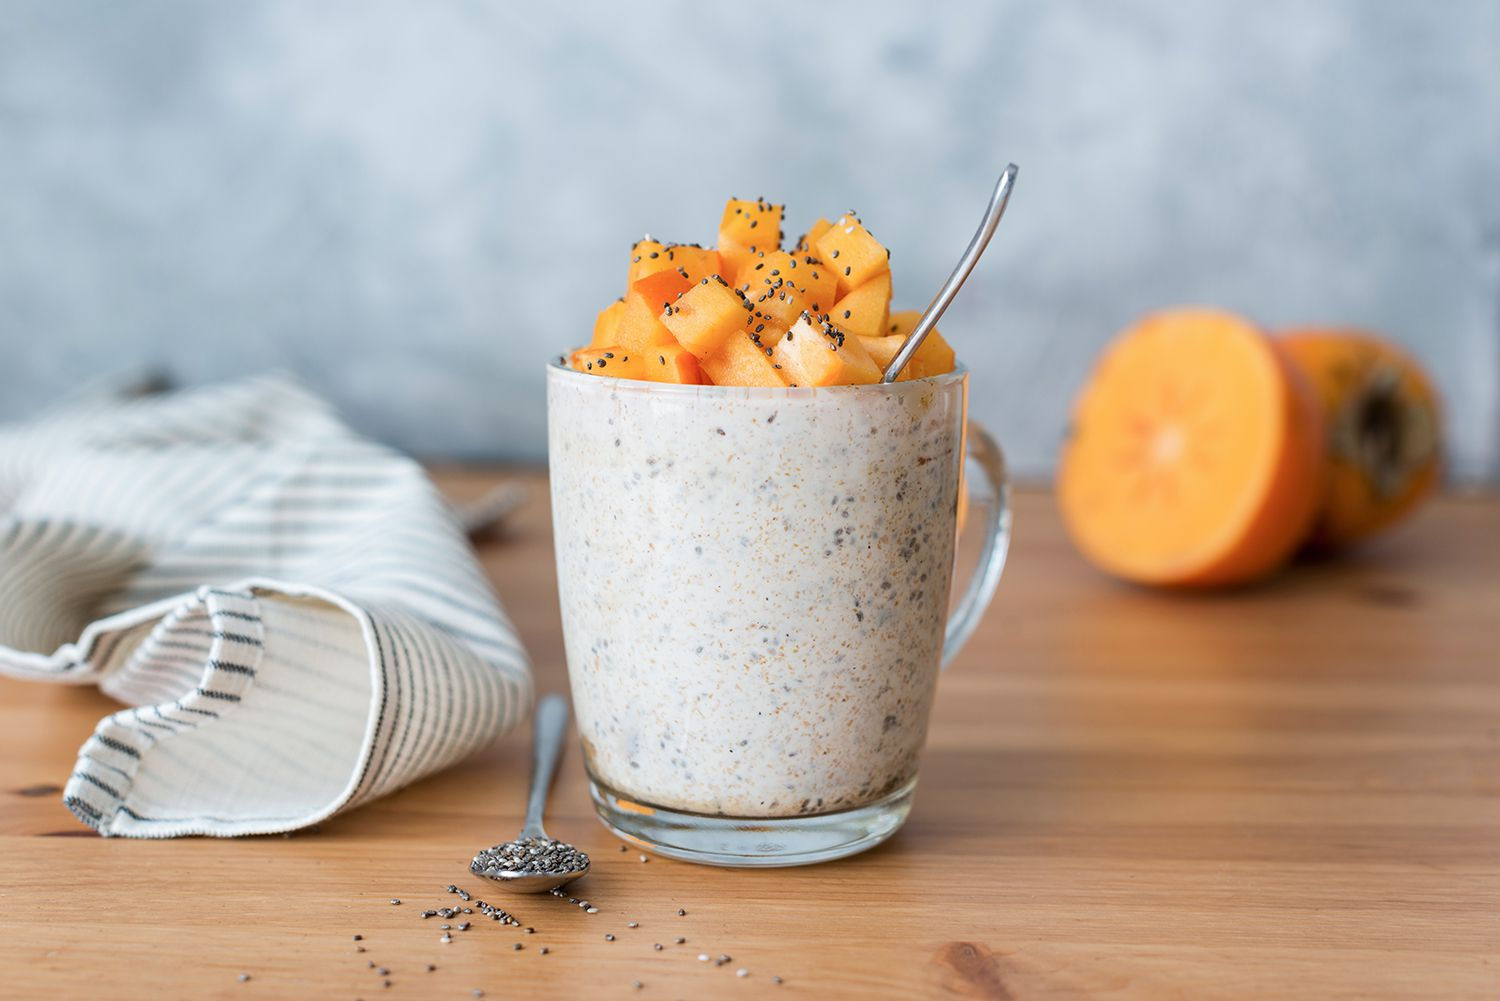 Chia seed pudding with persimmon in glass